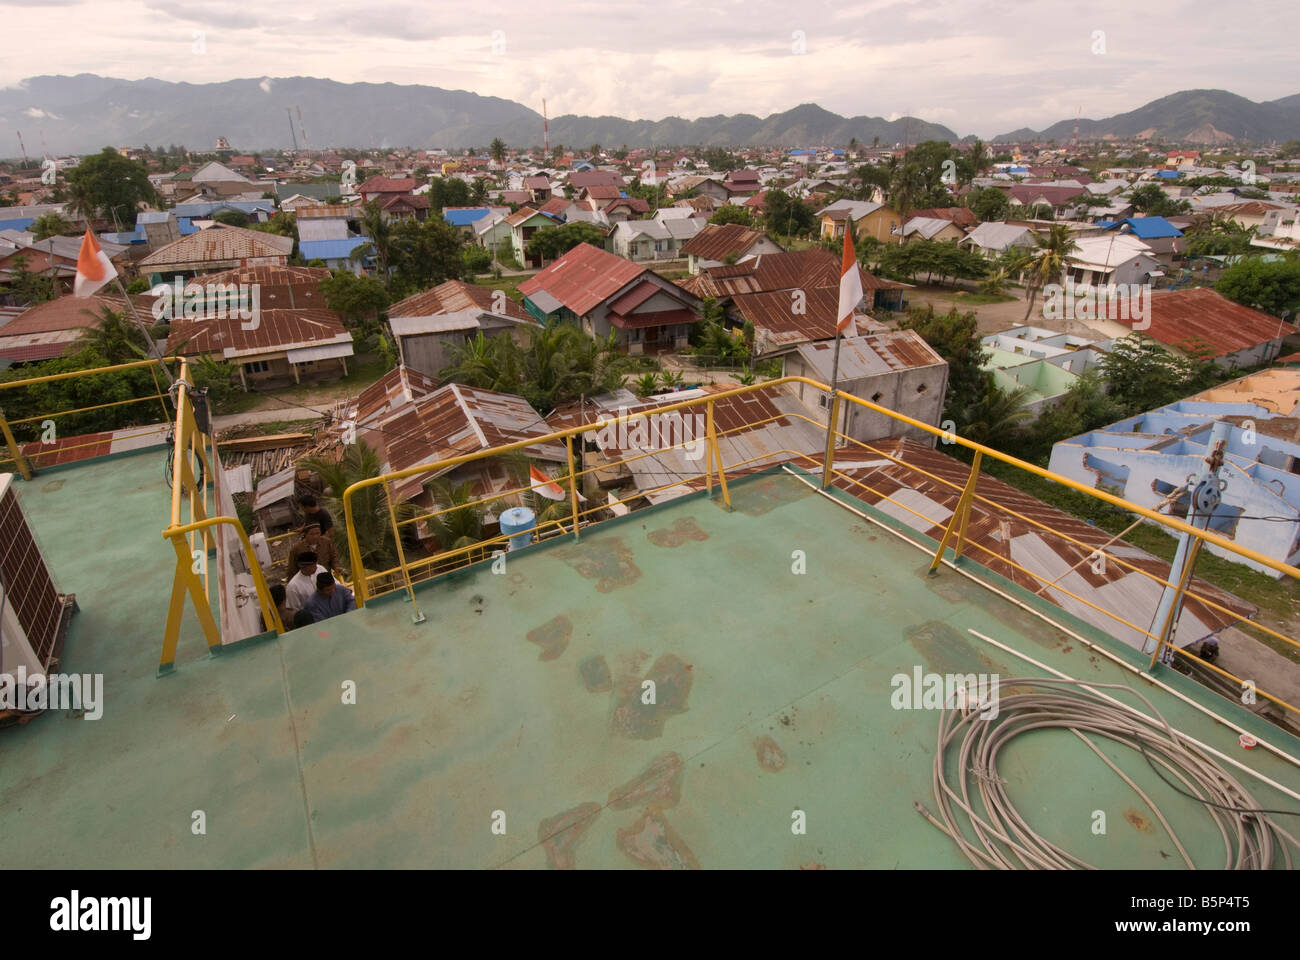 View over Banda Aceh from the top of the electric generator ship dumped inland by tsunami. Stock Photo